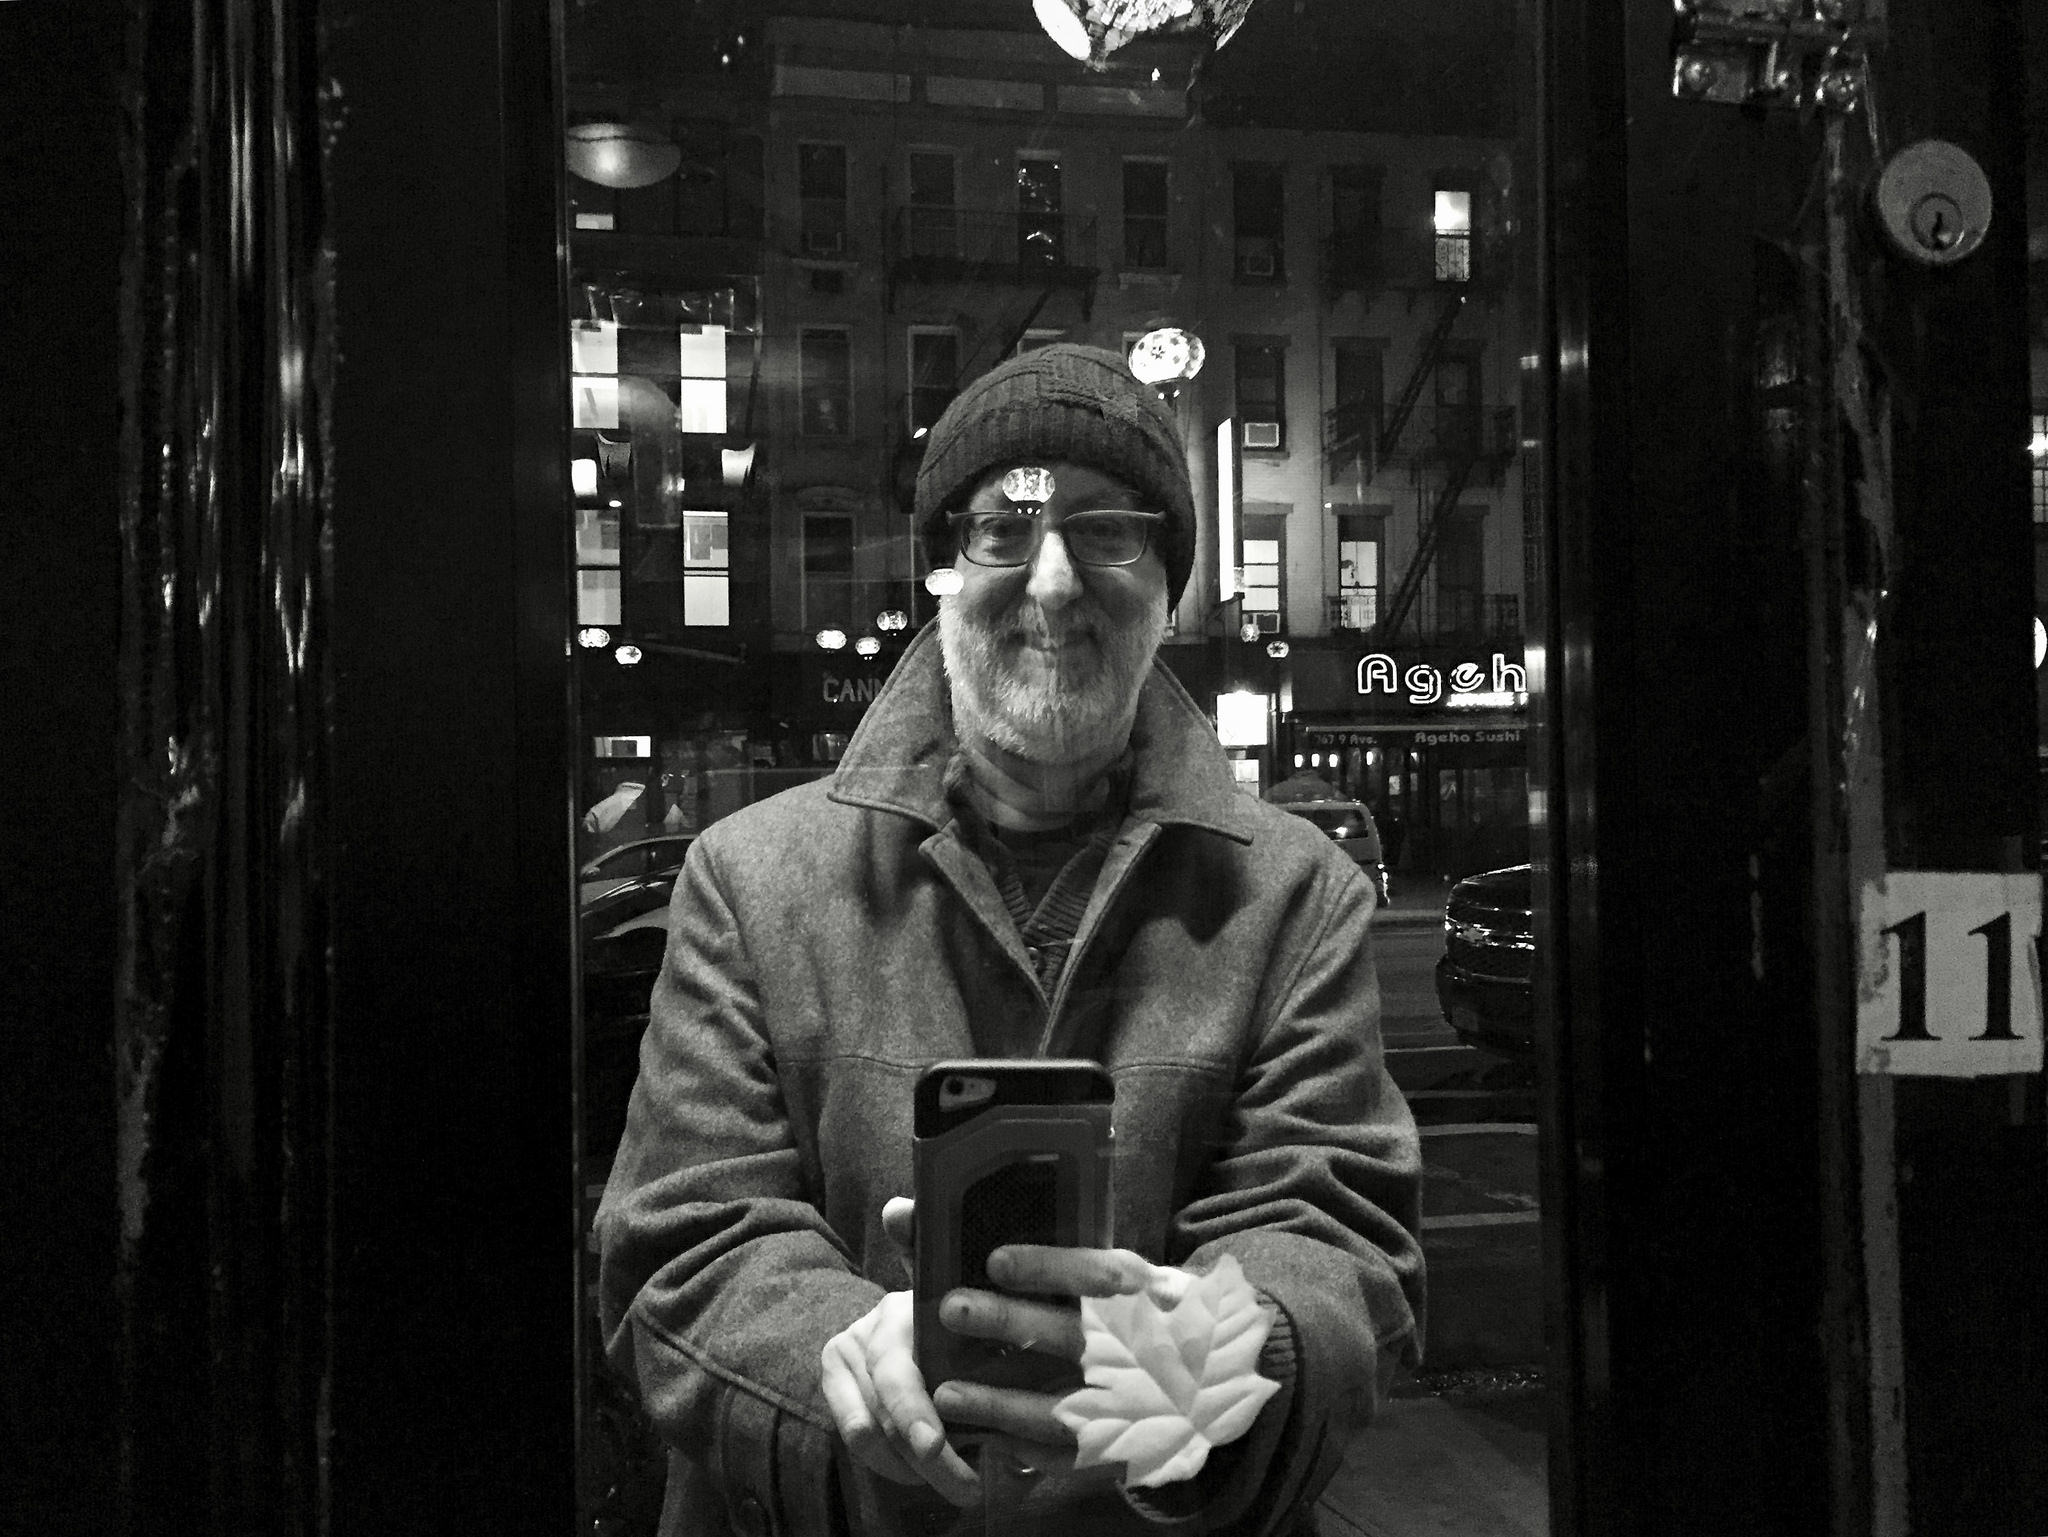 Neil Kramer outside a restaurant window